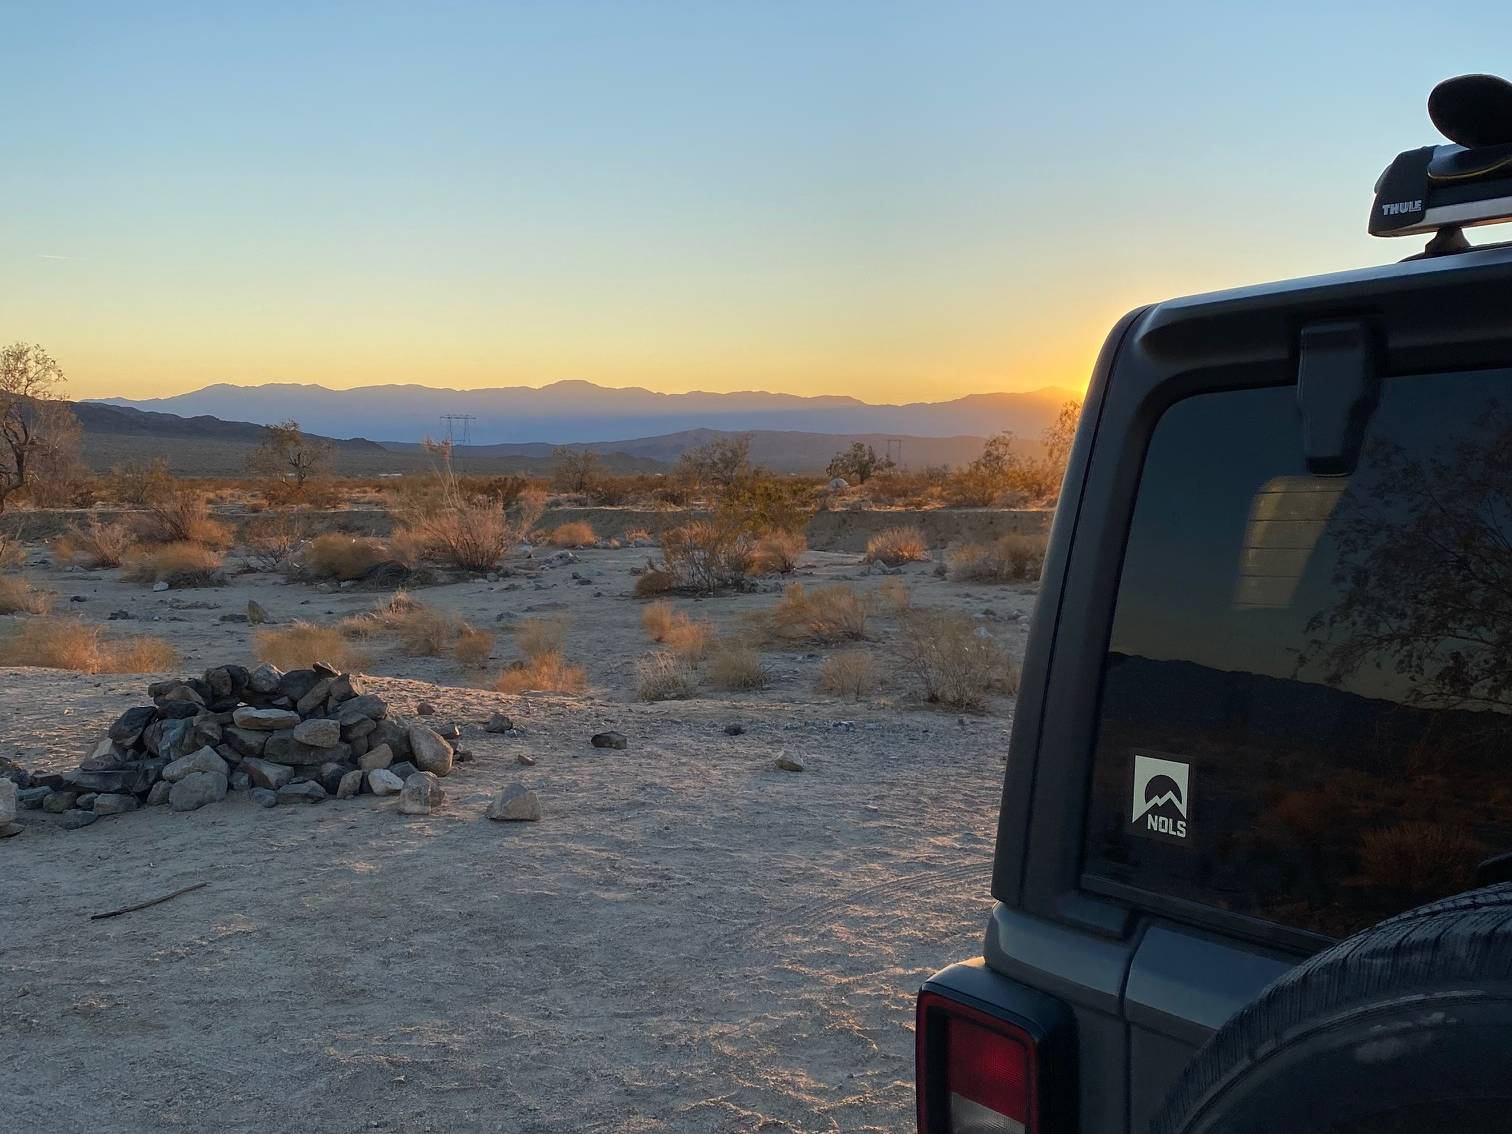 Back hatch of a car in the desert at sunset